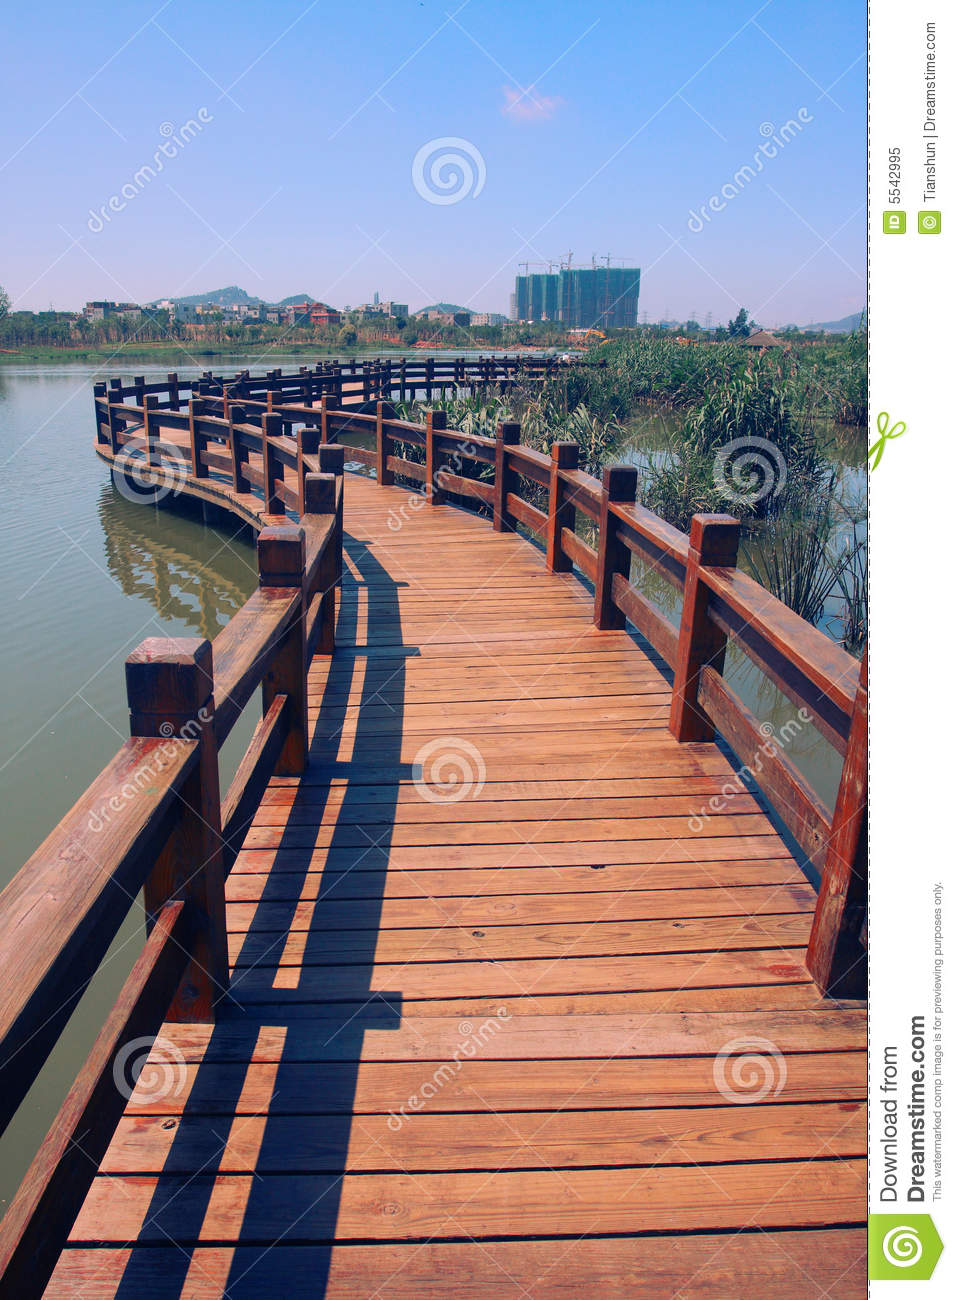 Download Wood path on water stock image. Image of wood, xiamen - 5542995